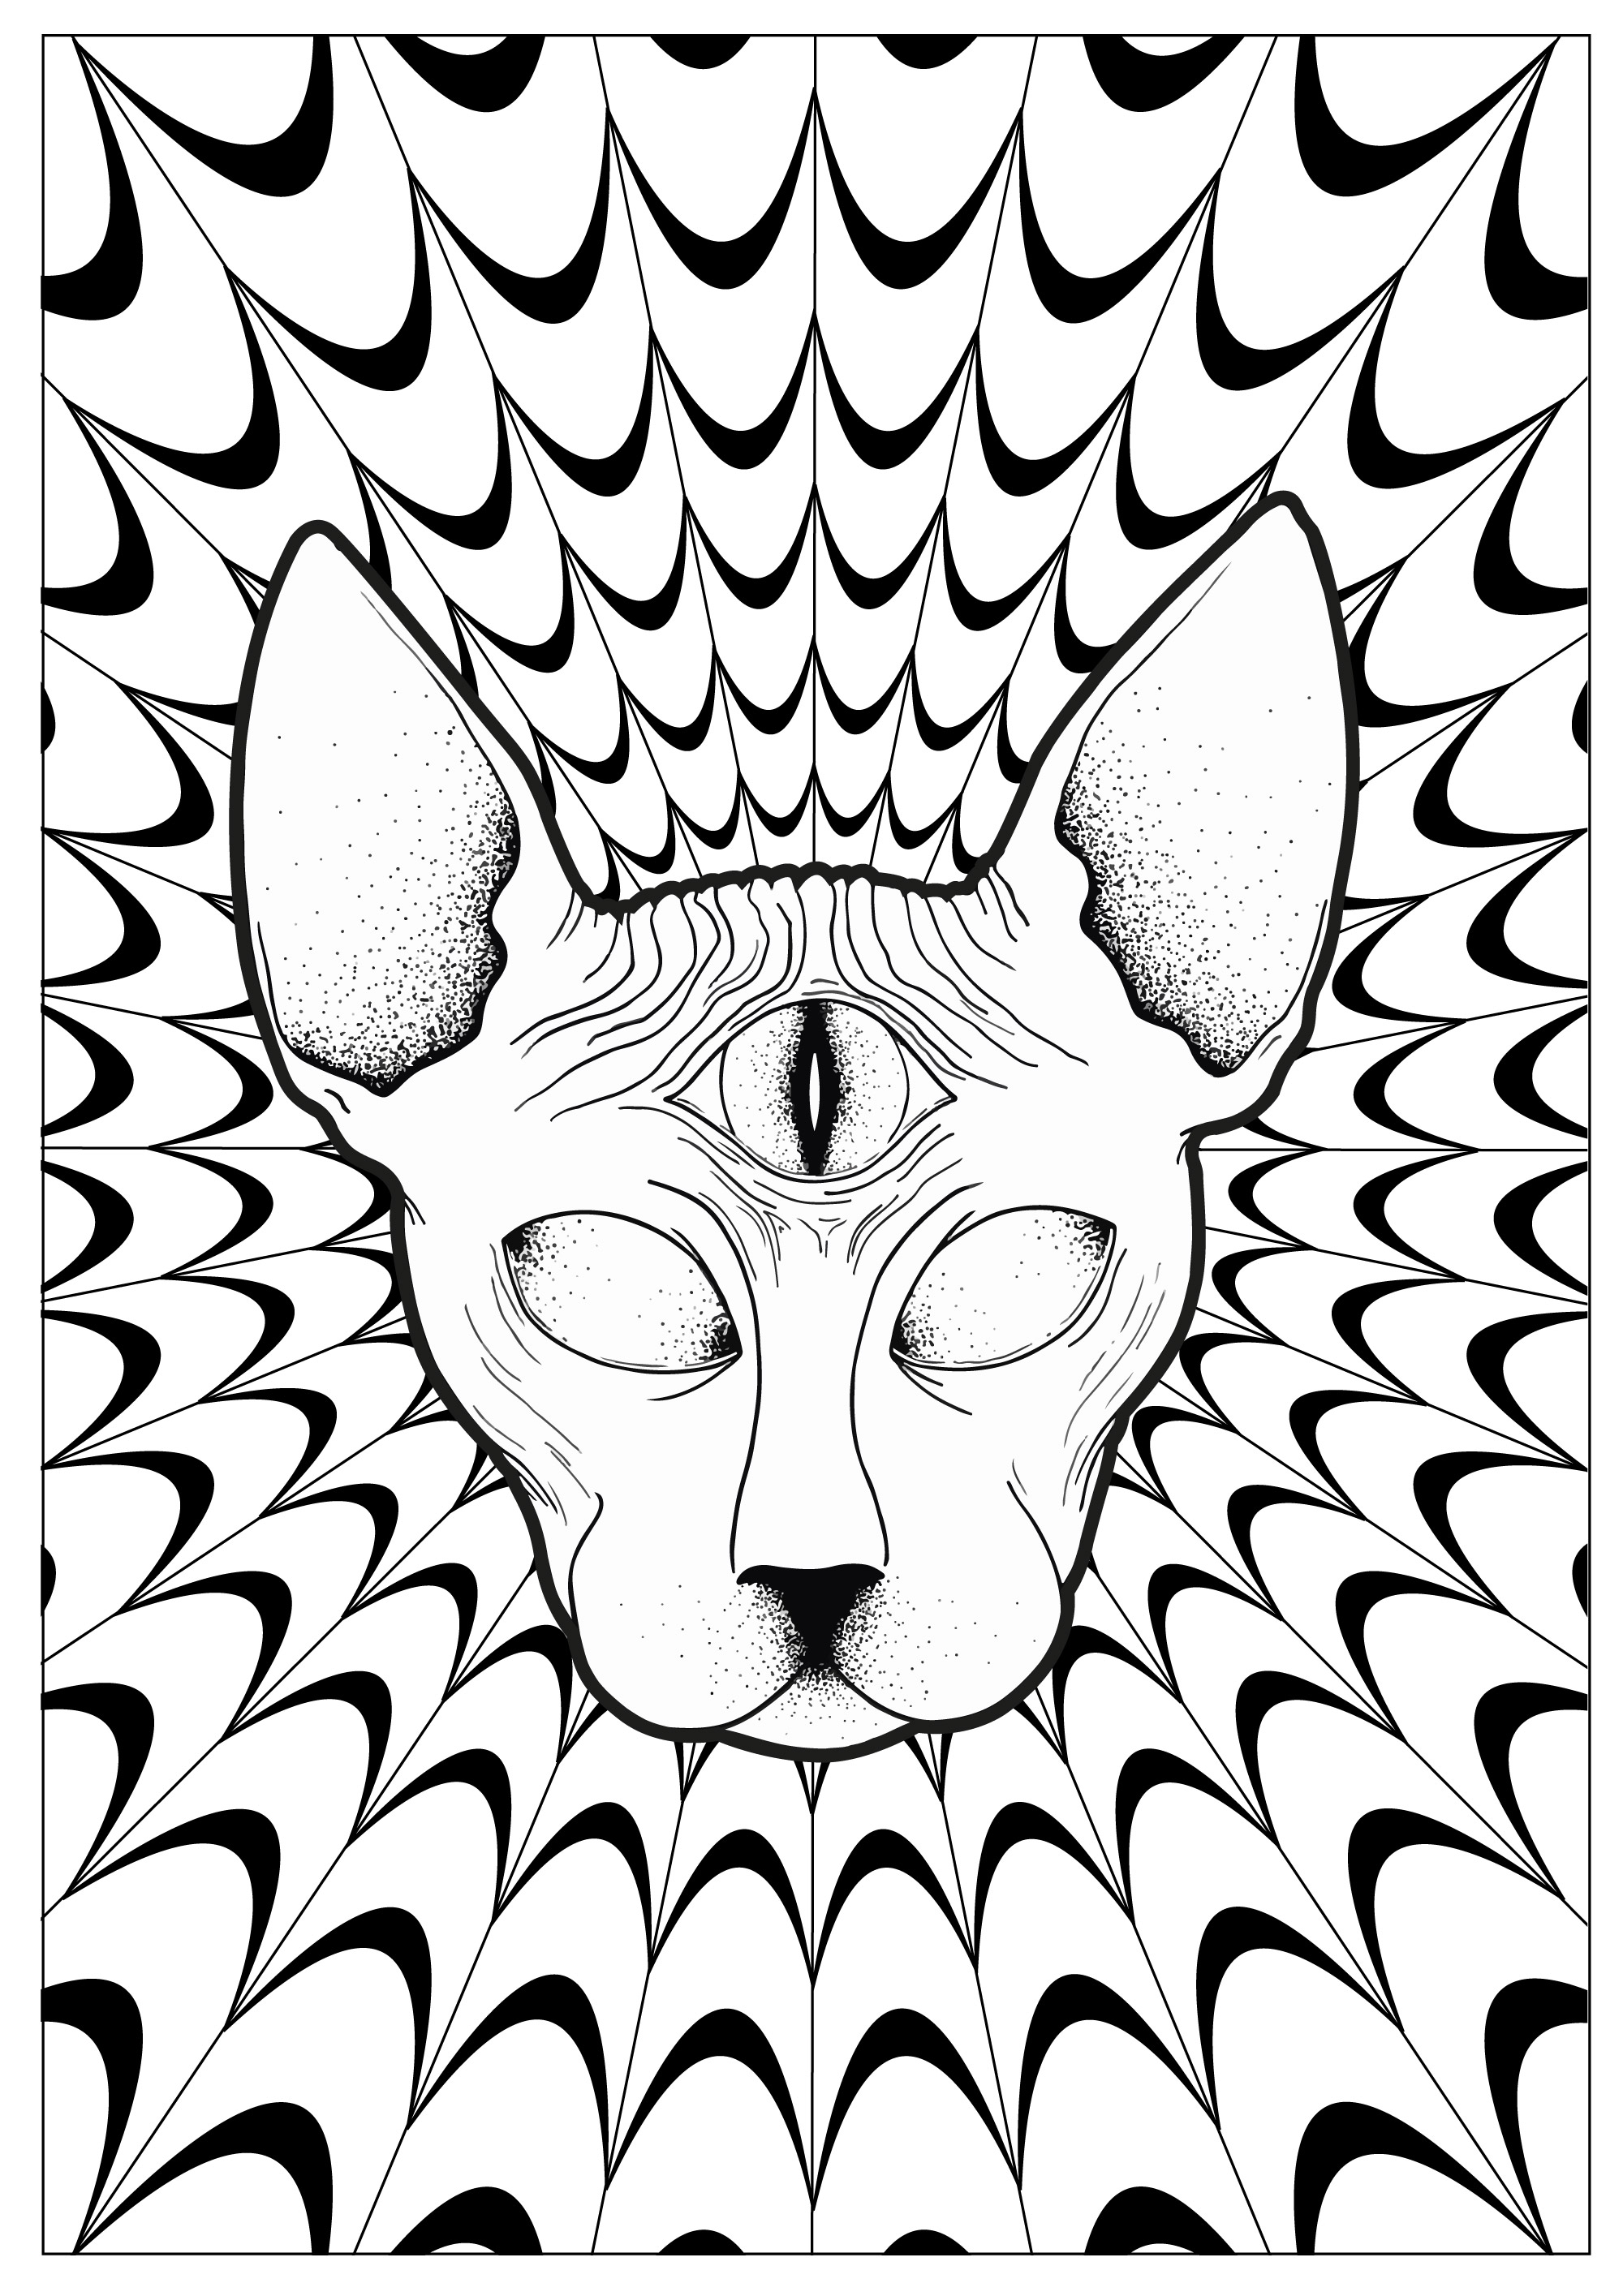 30+ Inspiration Image of Trippy Coloring Pages